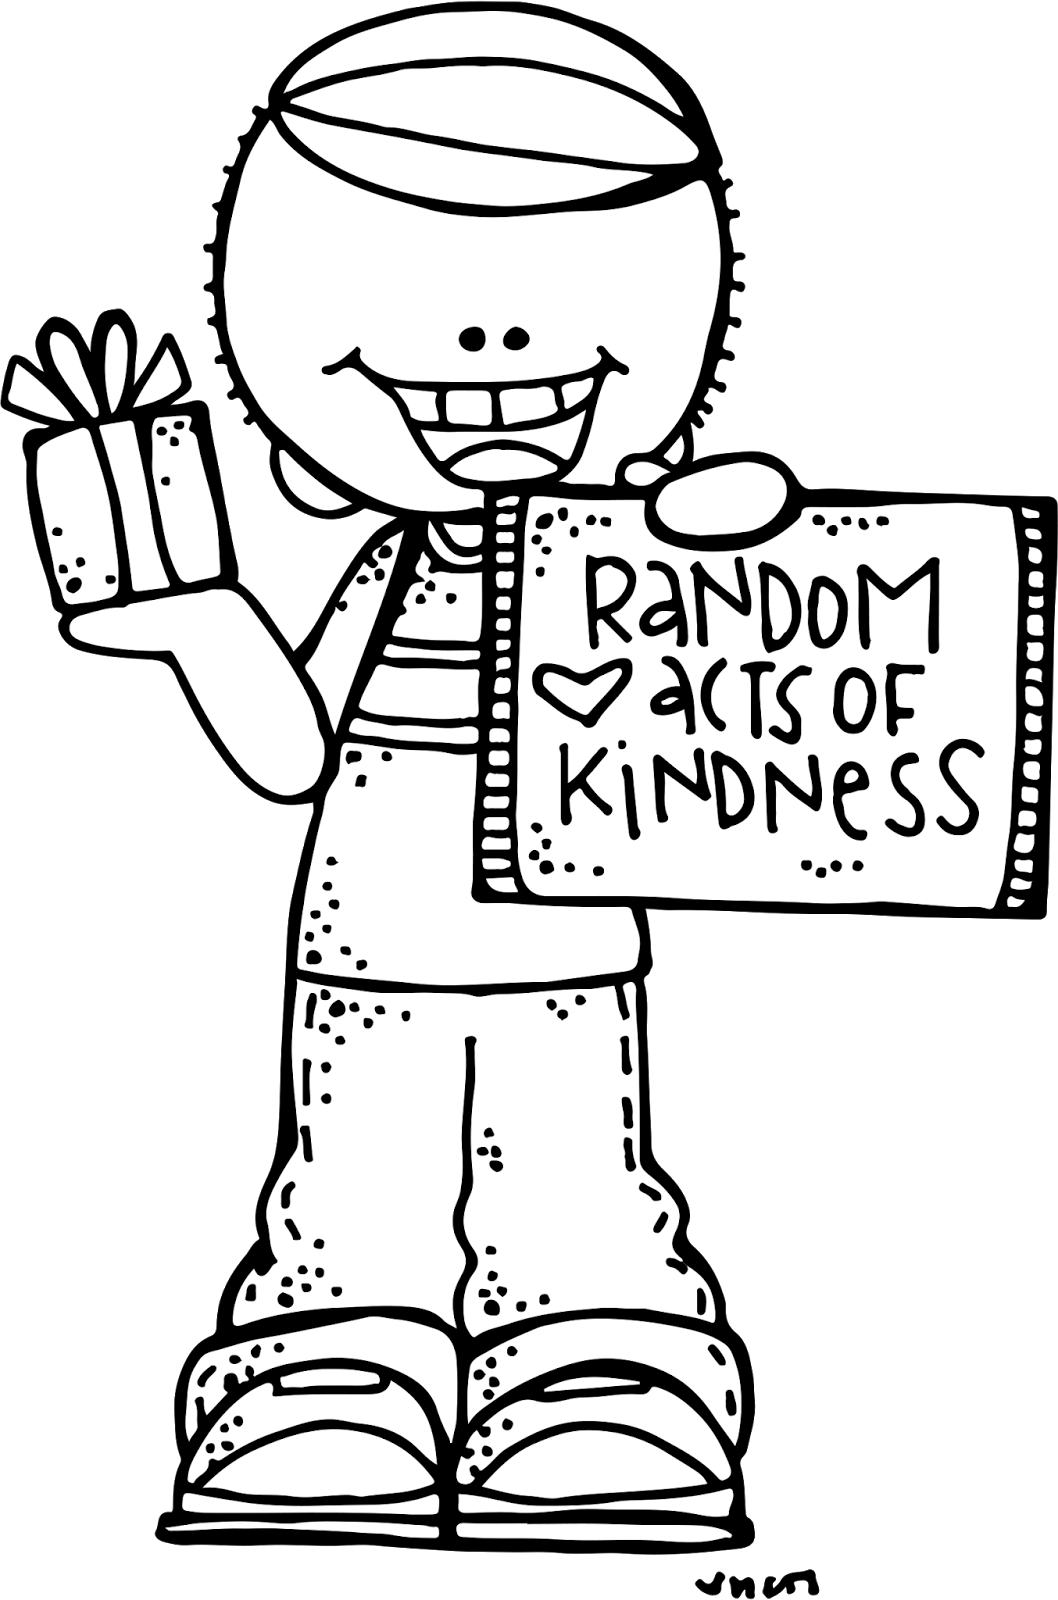 One Little Tiny Act Of Kindness Can Change A Person S